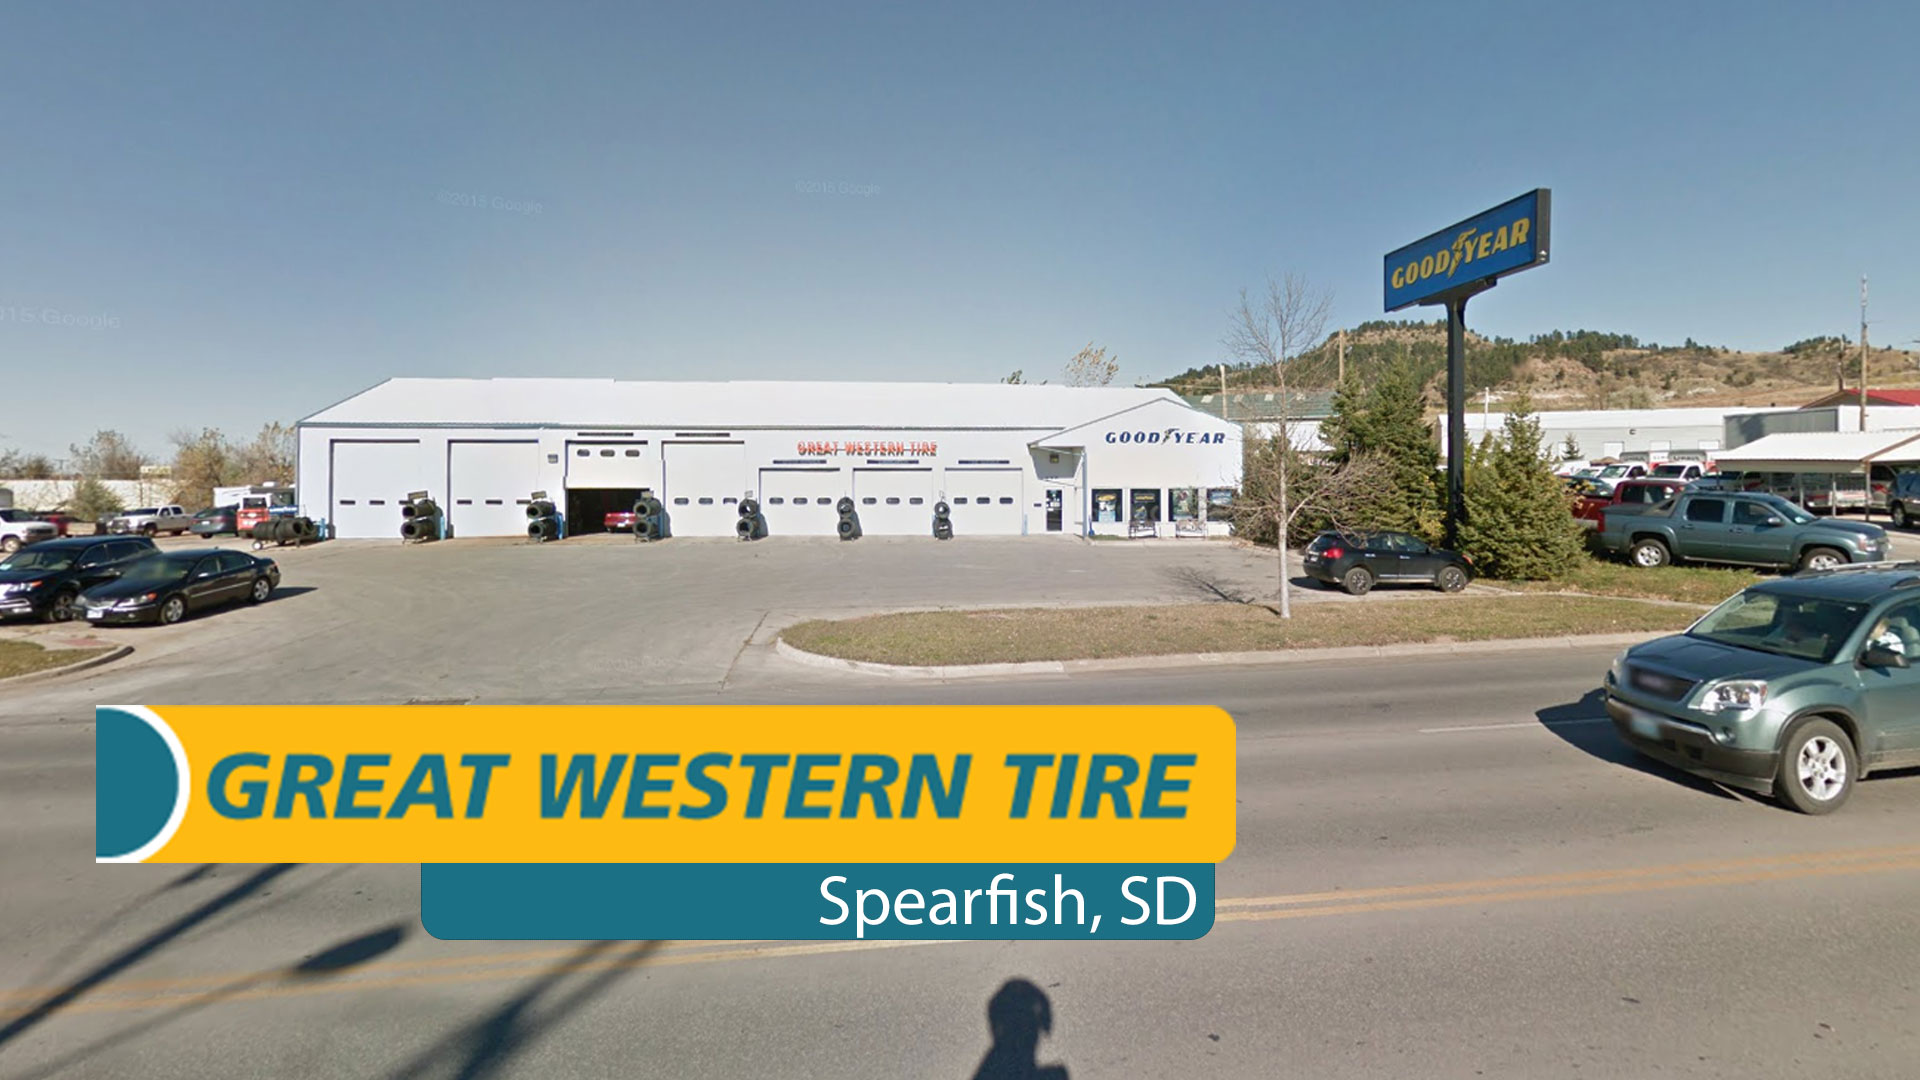 Great Western Tire store front in Spearfish